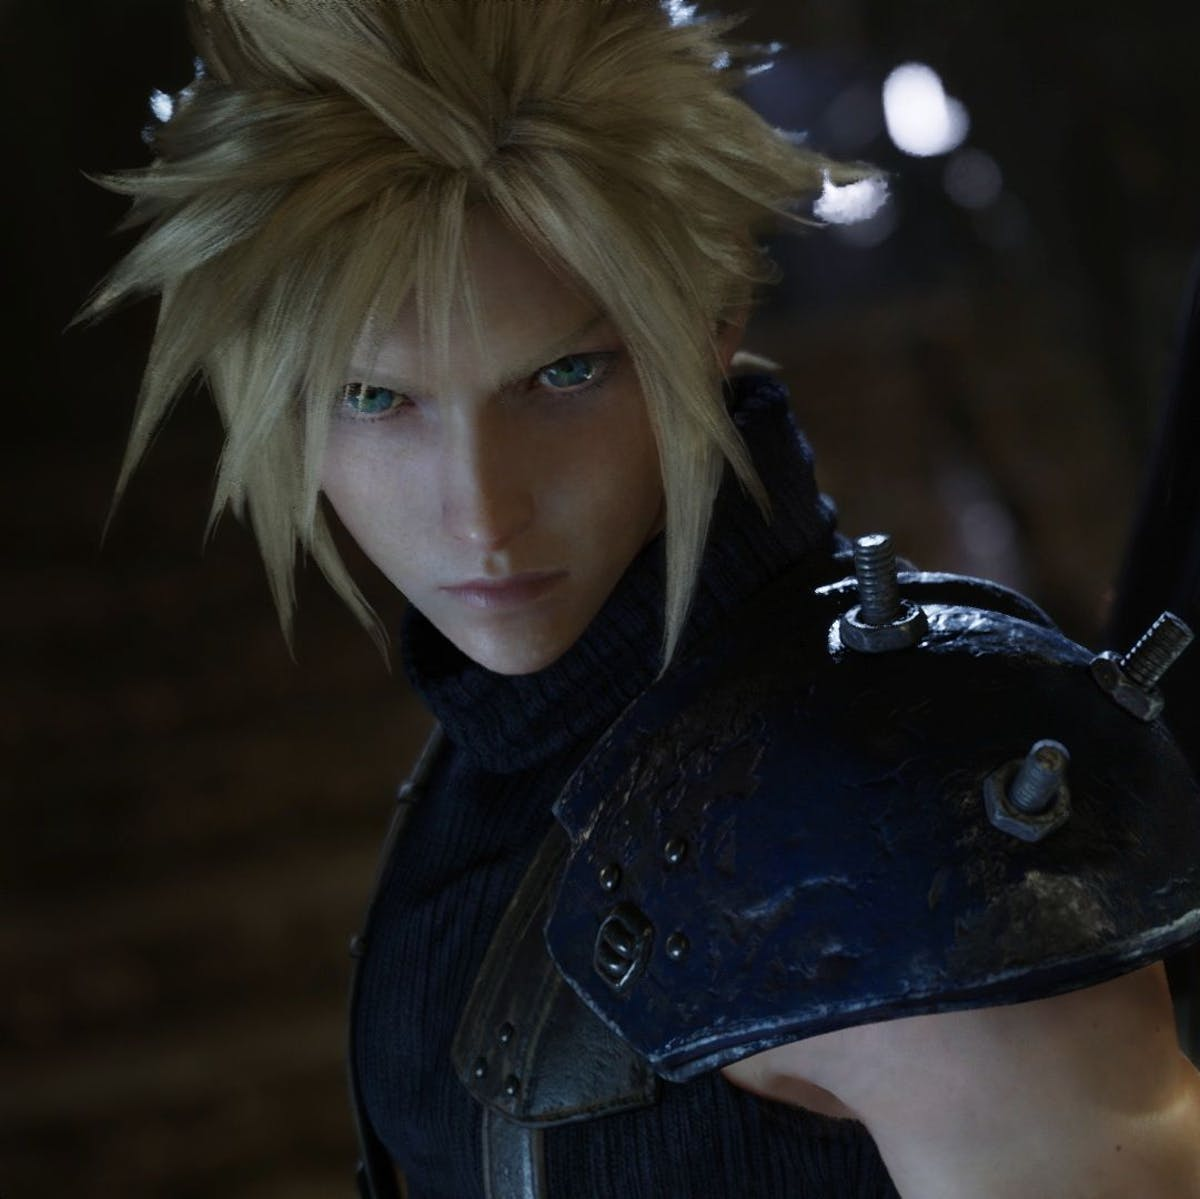 'Final Fantasy 7 Remake' Release Date Reveal Raises Worrying New Questions